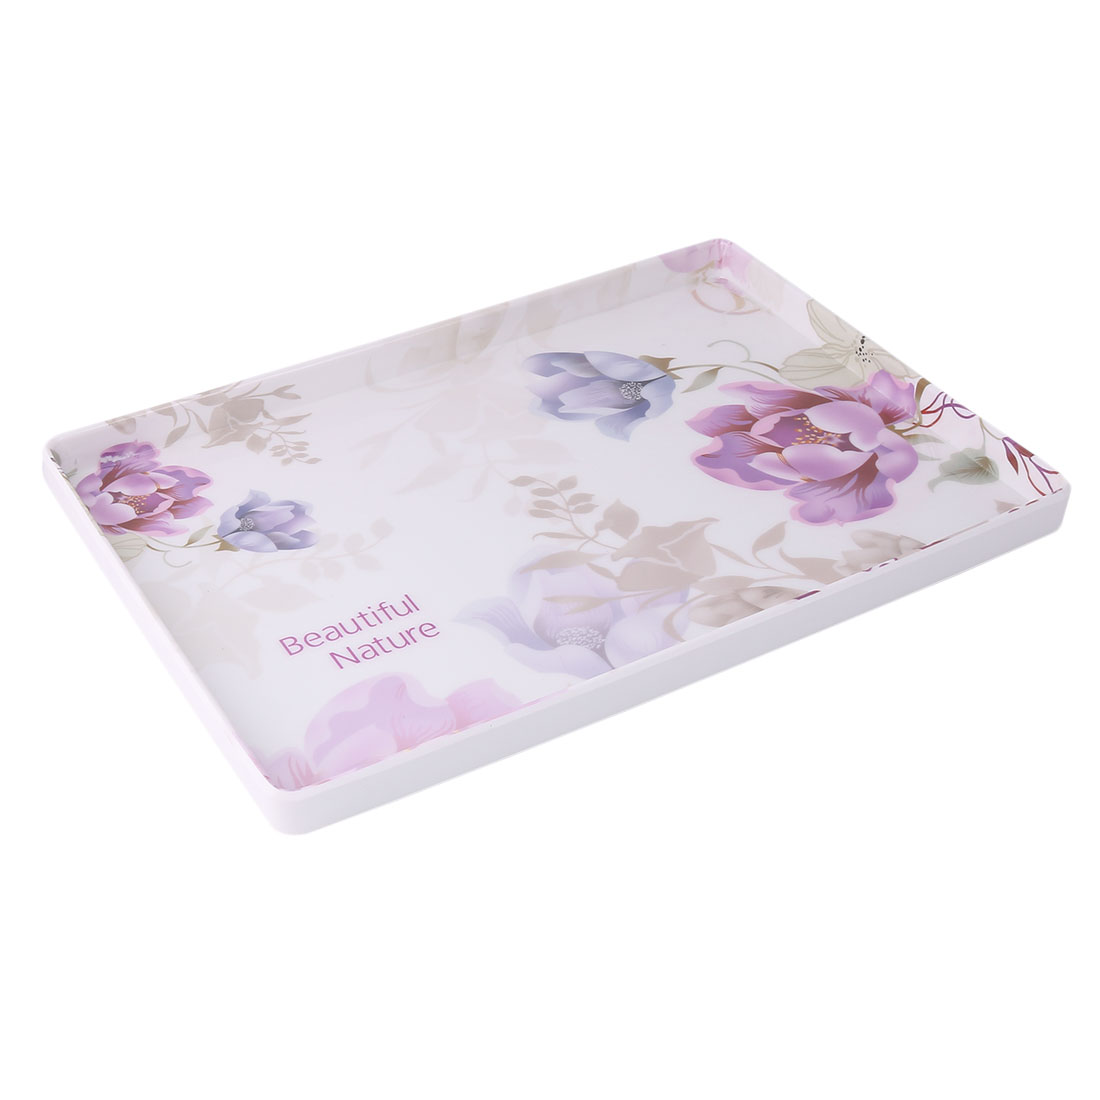 Family Kitchen Plastic Floral Print Rectangle Shaped Cup Plate Served Tray